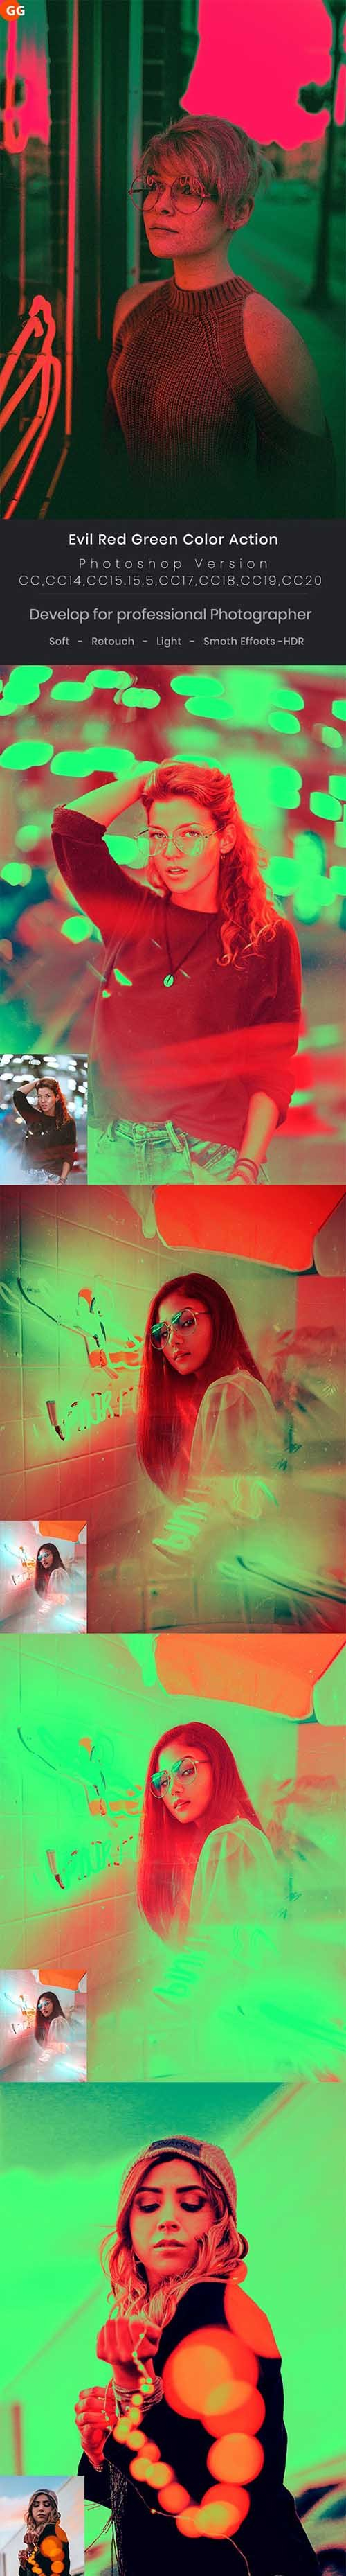 Evil Red Green Color Action 26103151